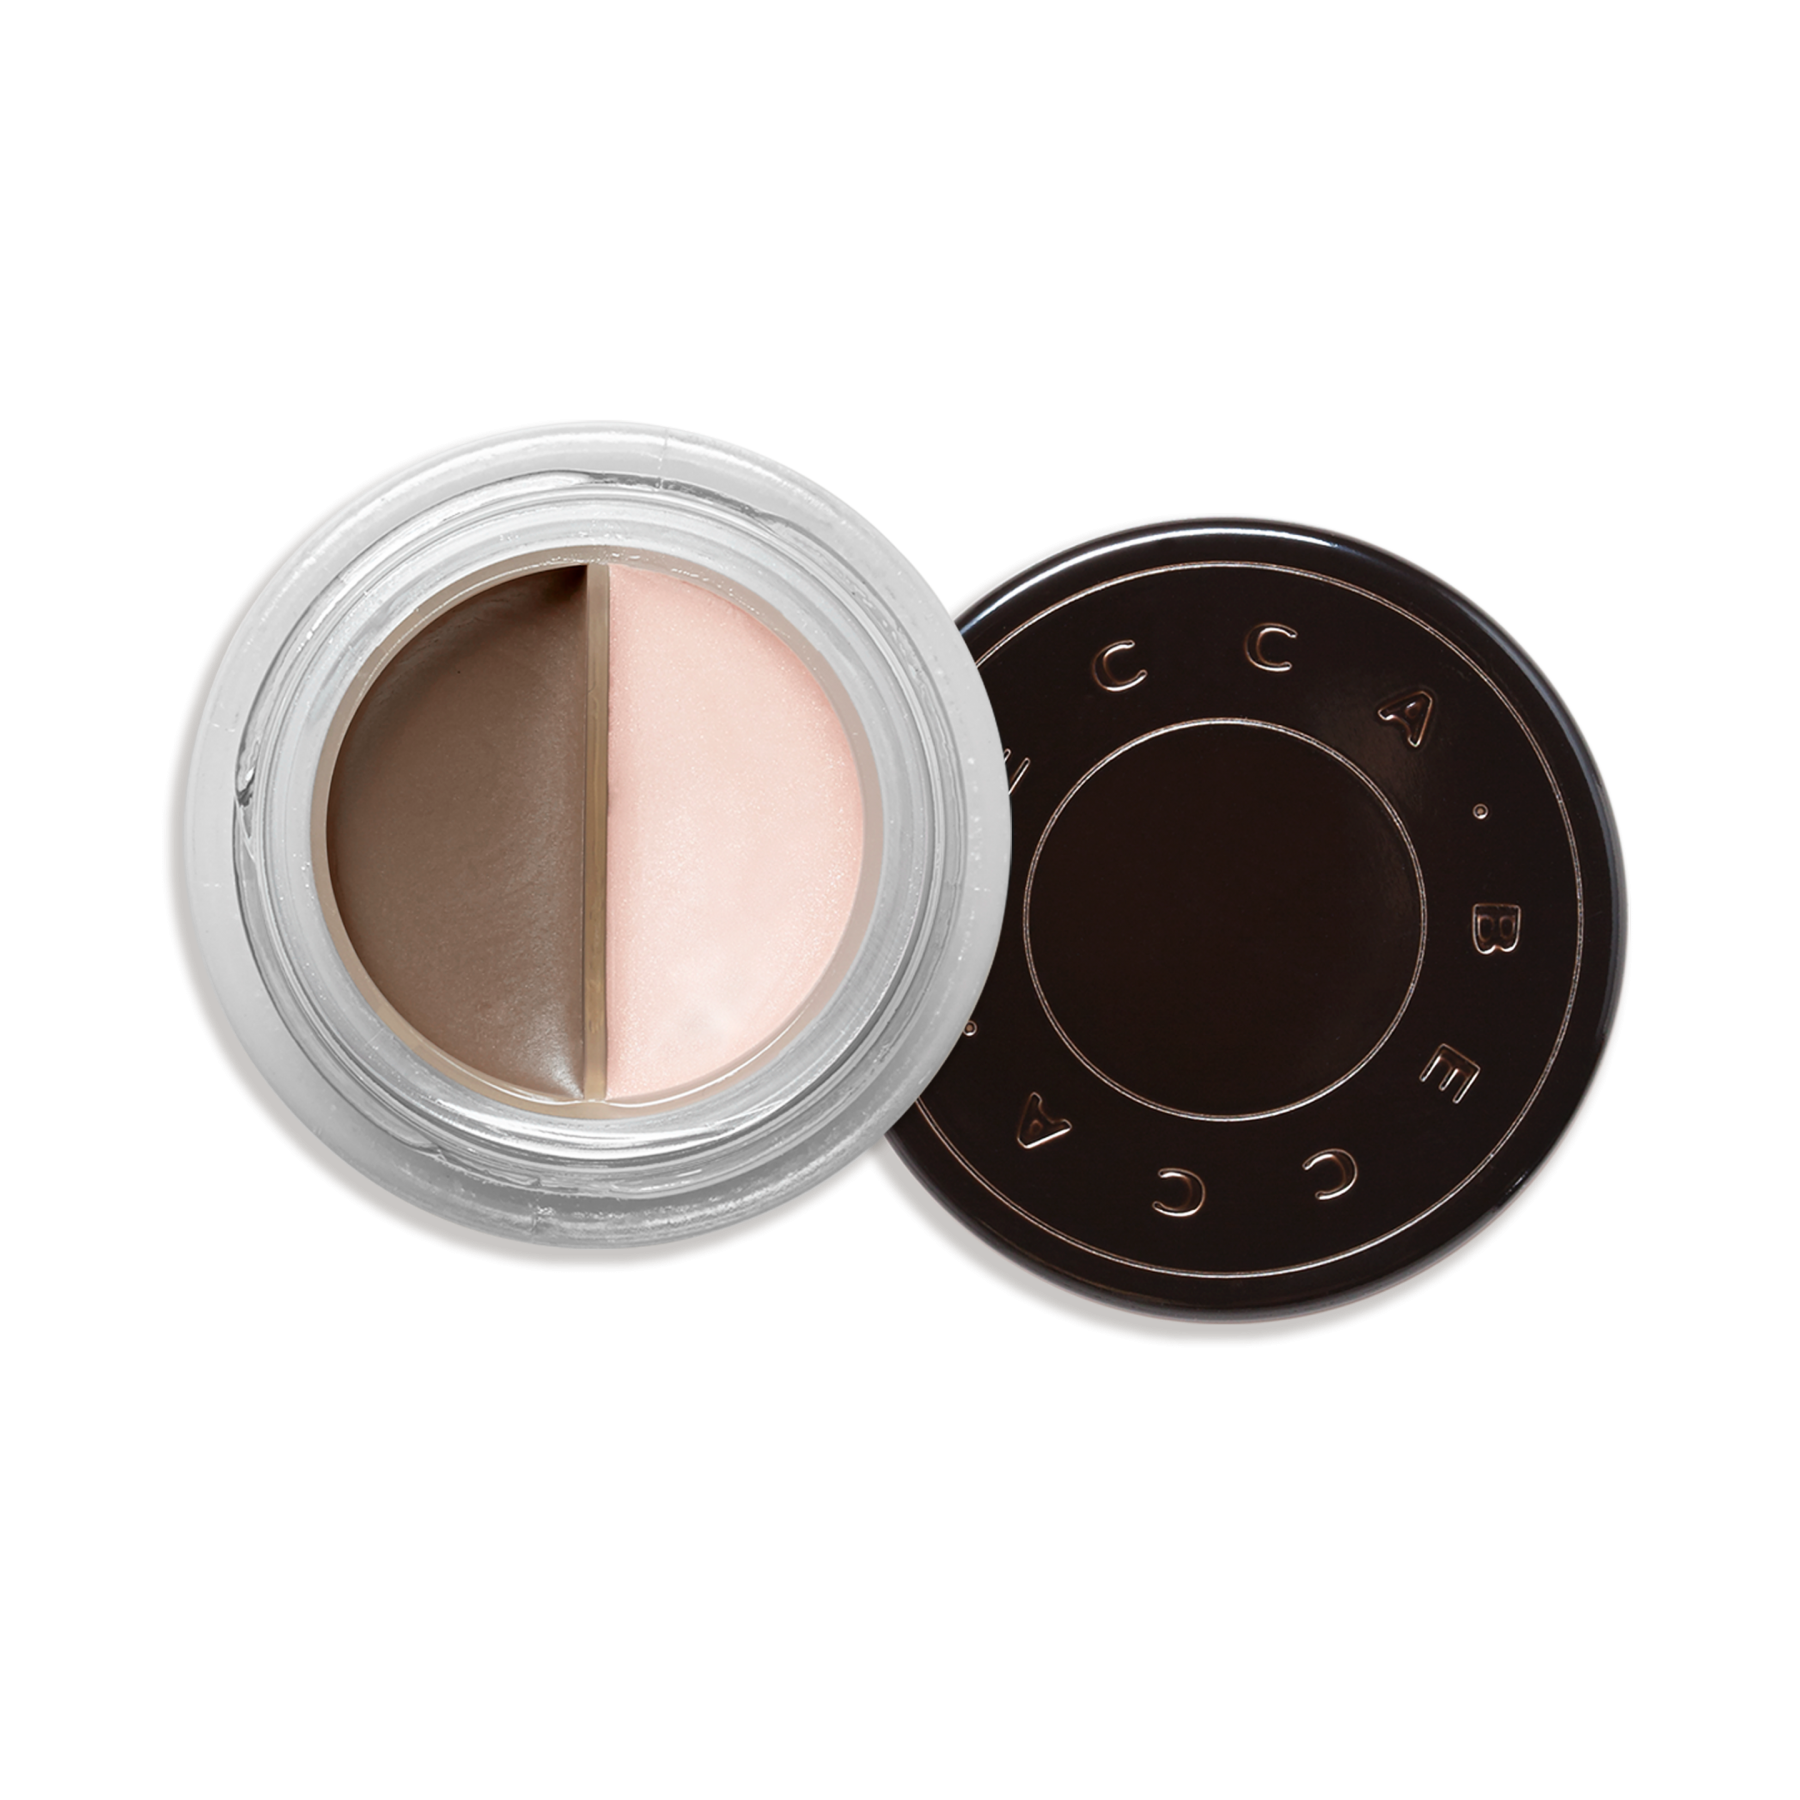 becca-shadow-light-brow-contour-mousse-cafe_1-1.png